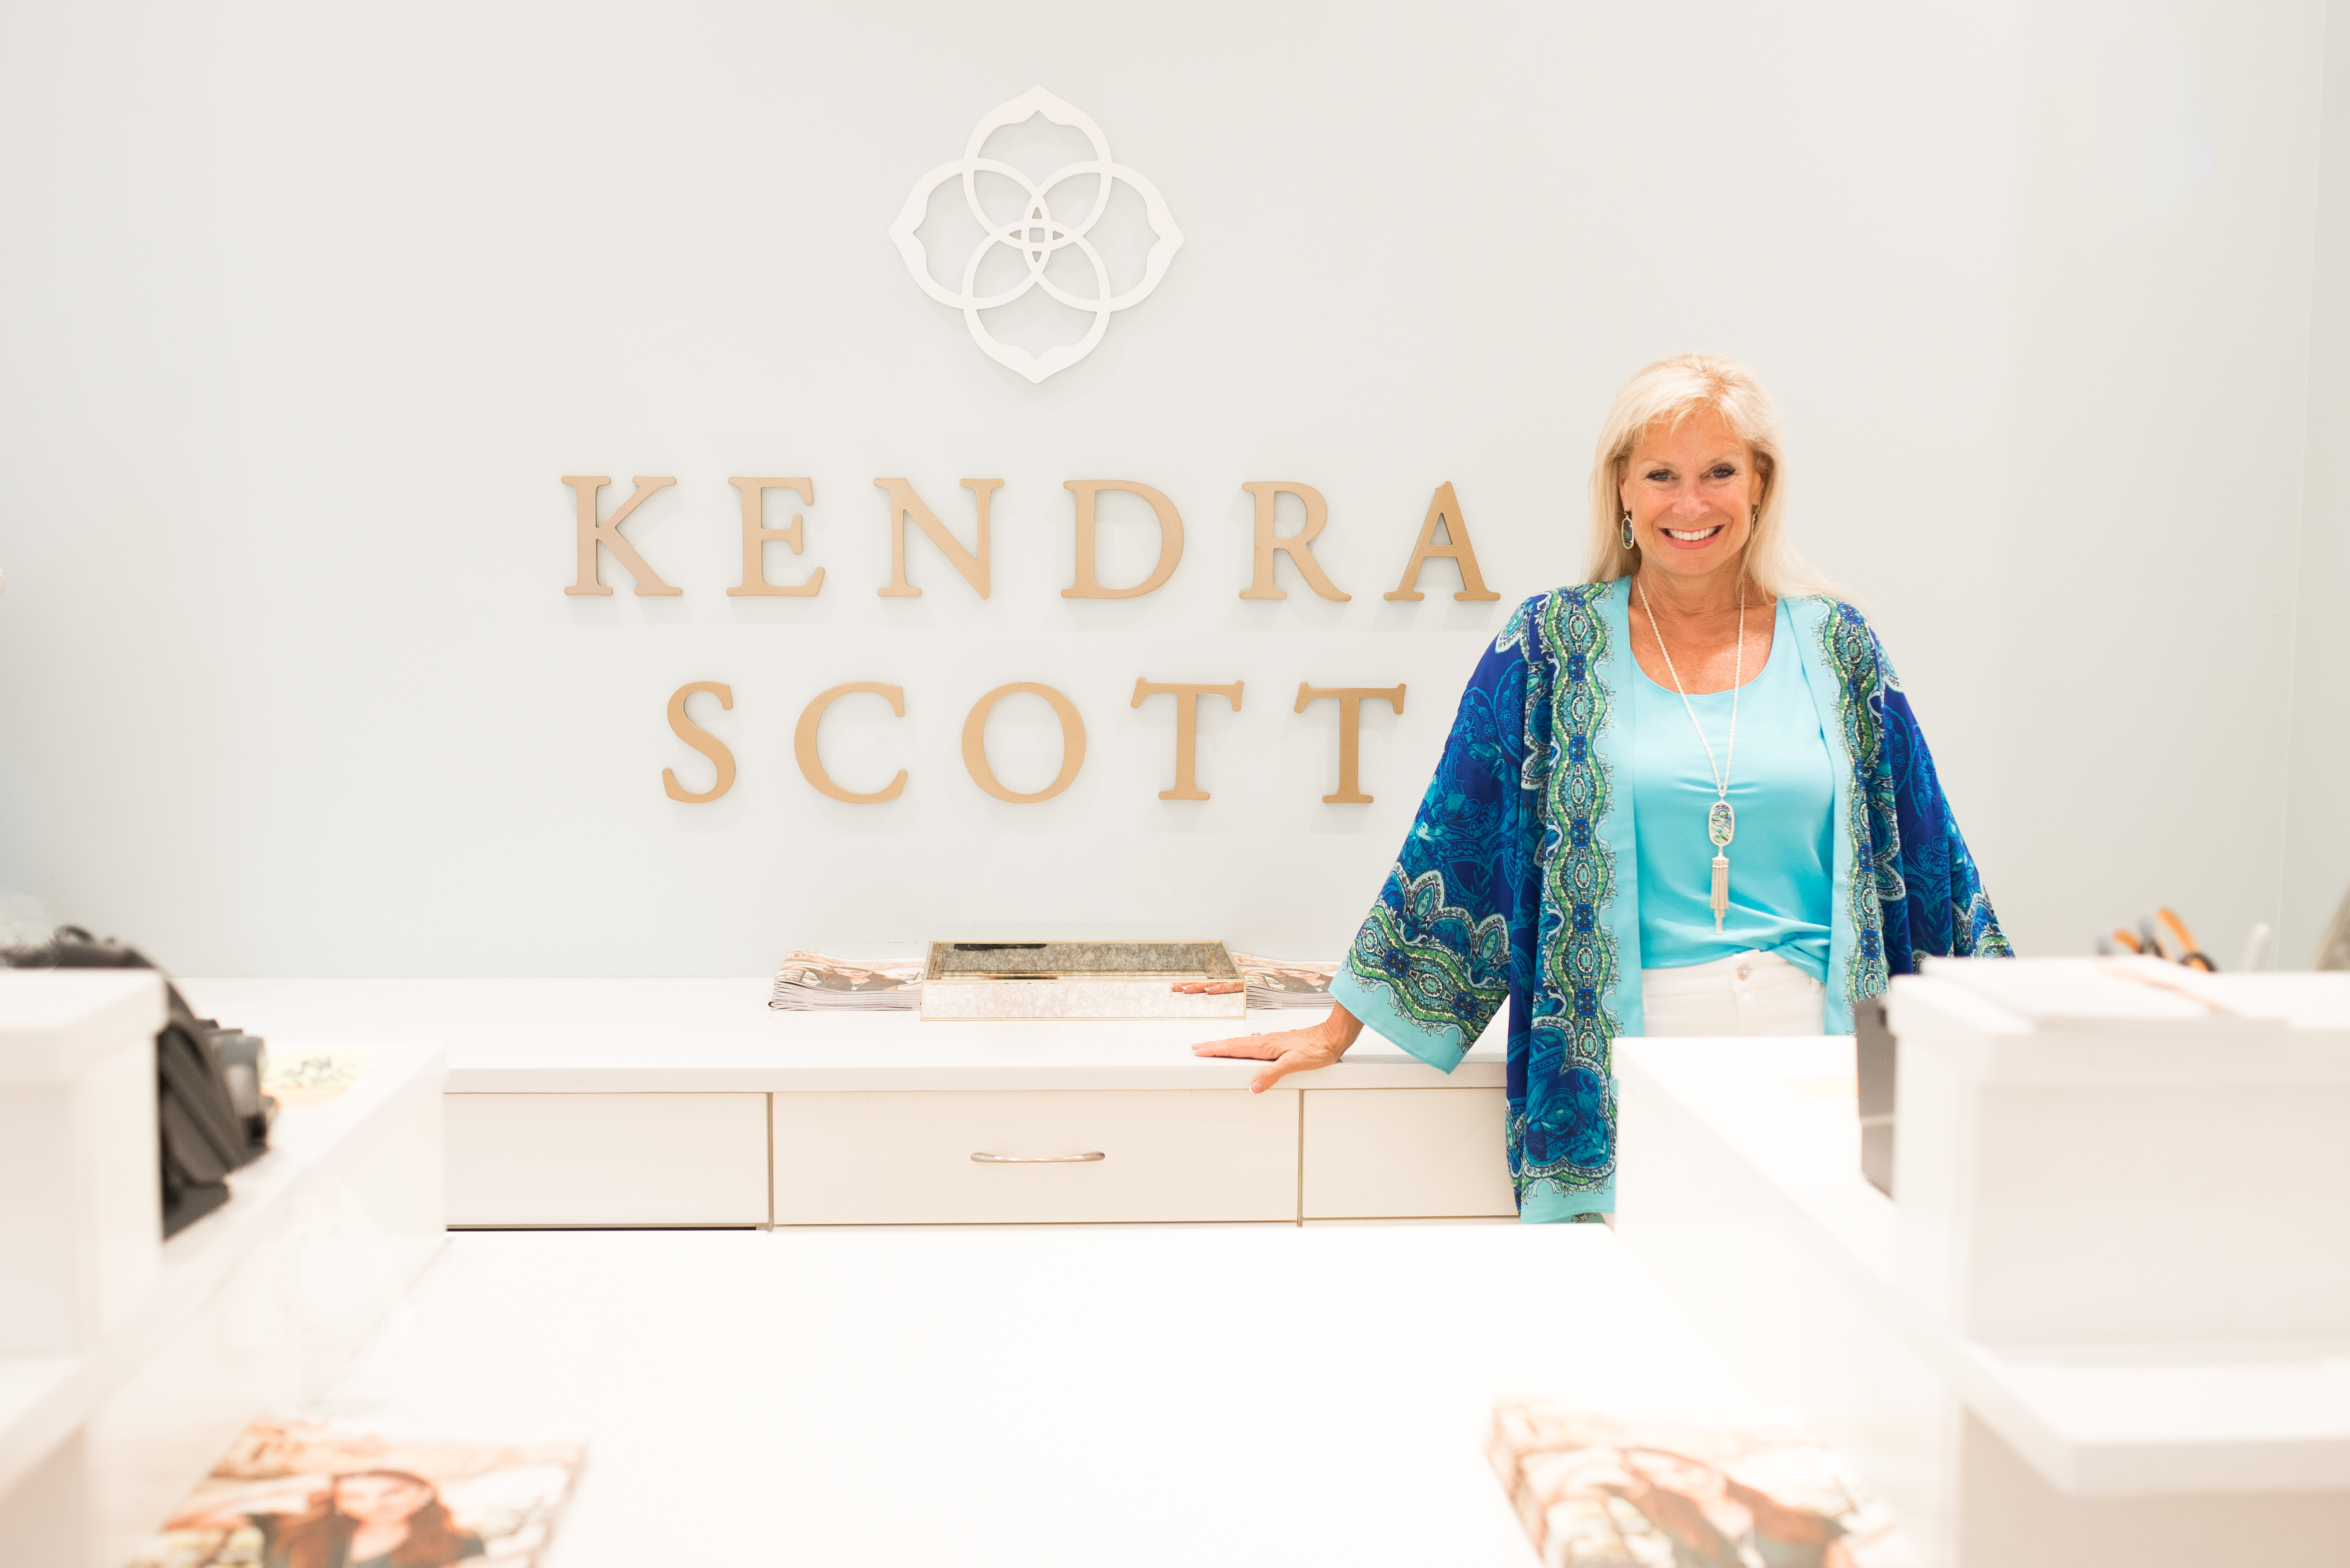 I Had A Wonderful Time Hosting My Very First Event Wearing 2 Hats One As An Interior Designer And The Othera Fashion Blogger For Kendra Scott Fall